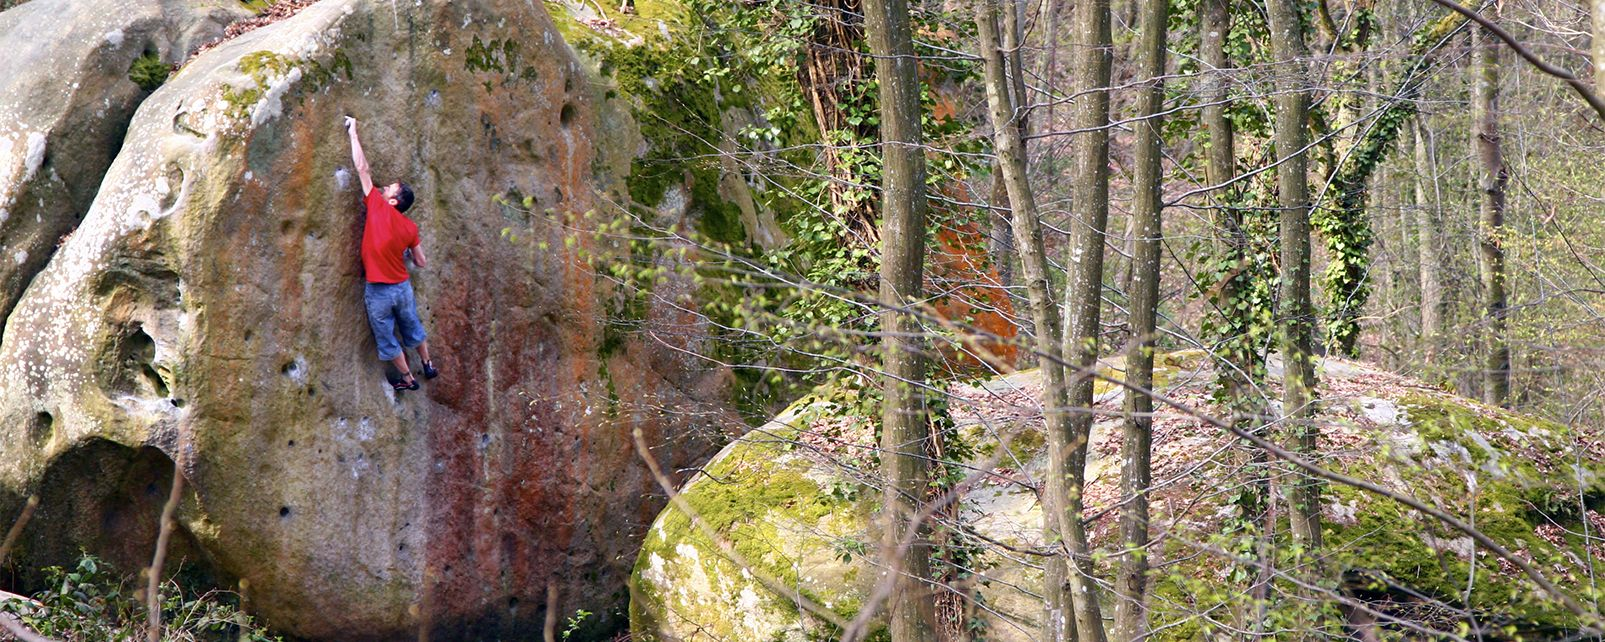 Climbing in Fontainebleau forest, Climbing in Fontainbleau Forest, Sports and activties, Ile de France